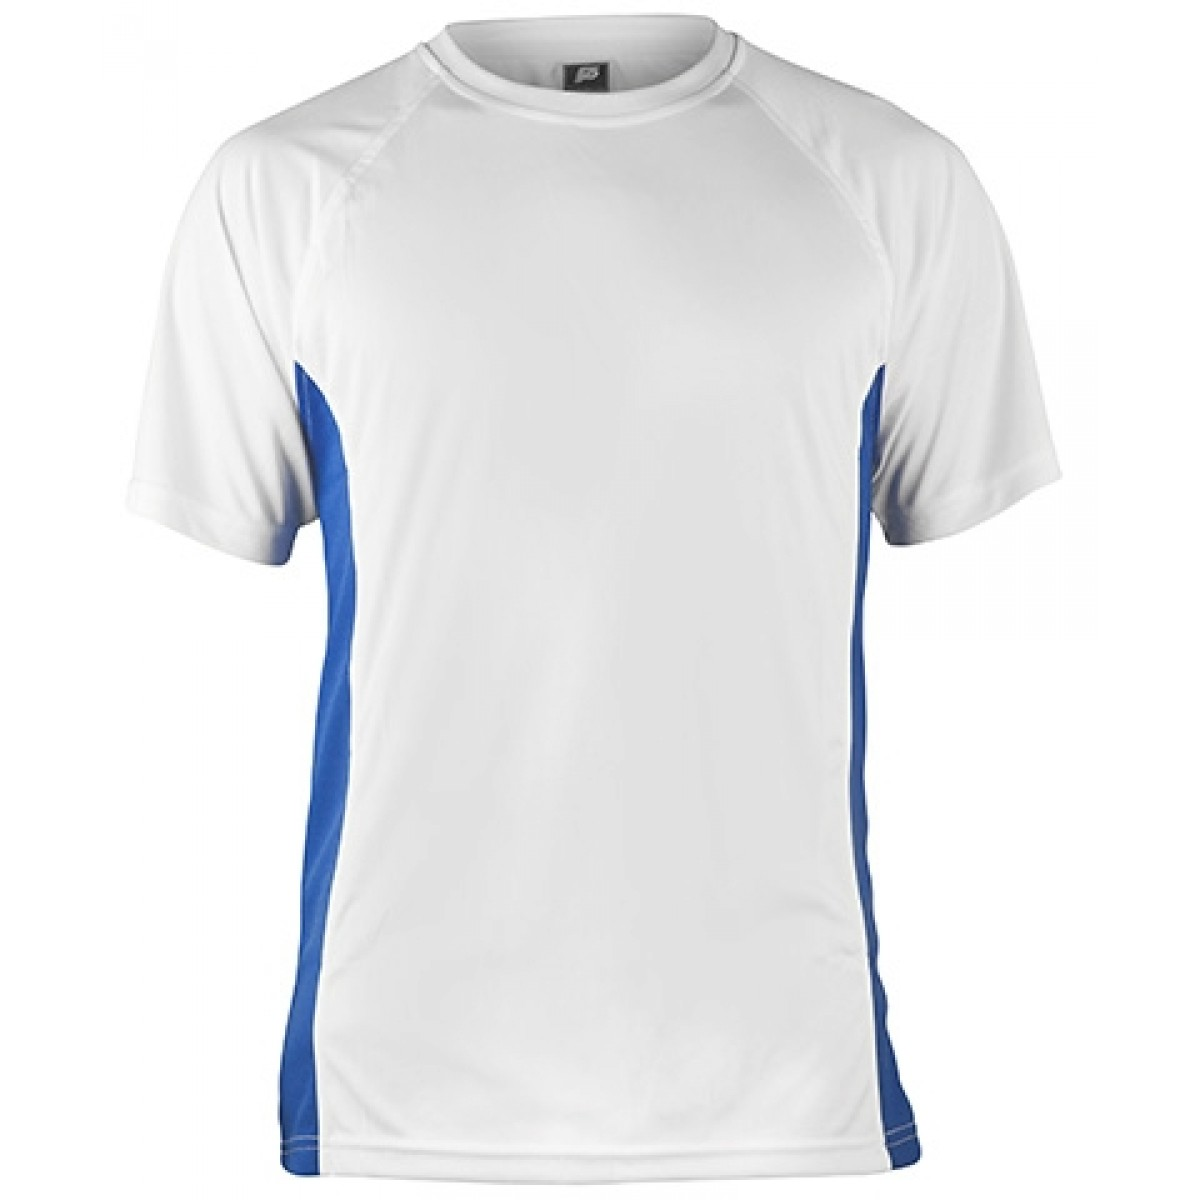 Short Sleeve White Performance With Blue Side Insert-White/Blue-S